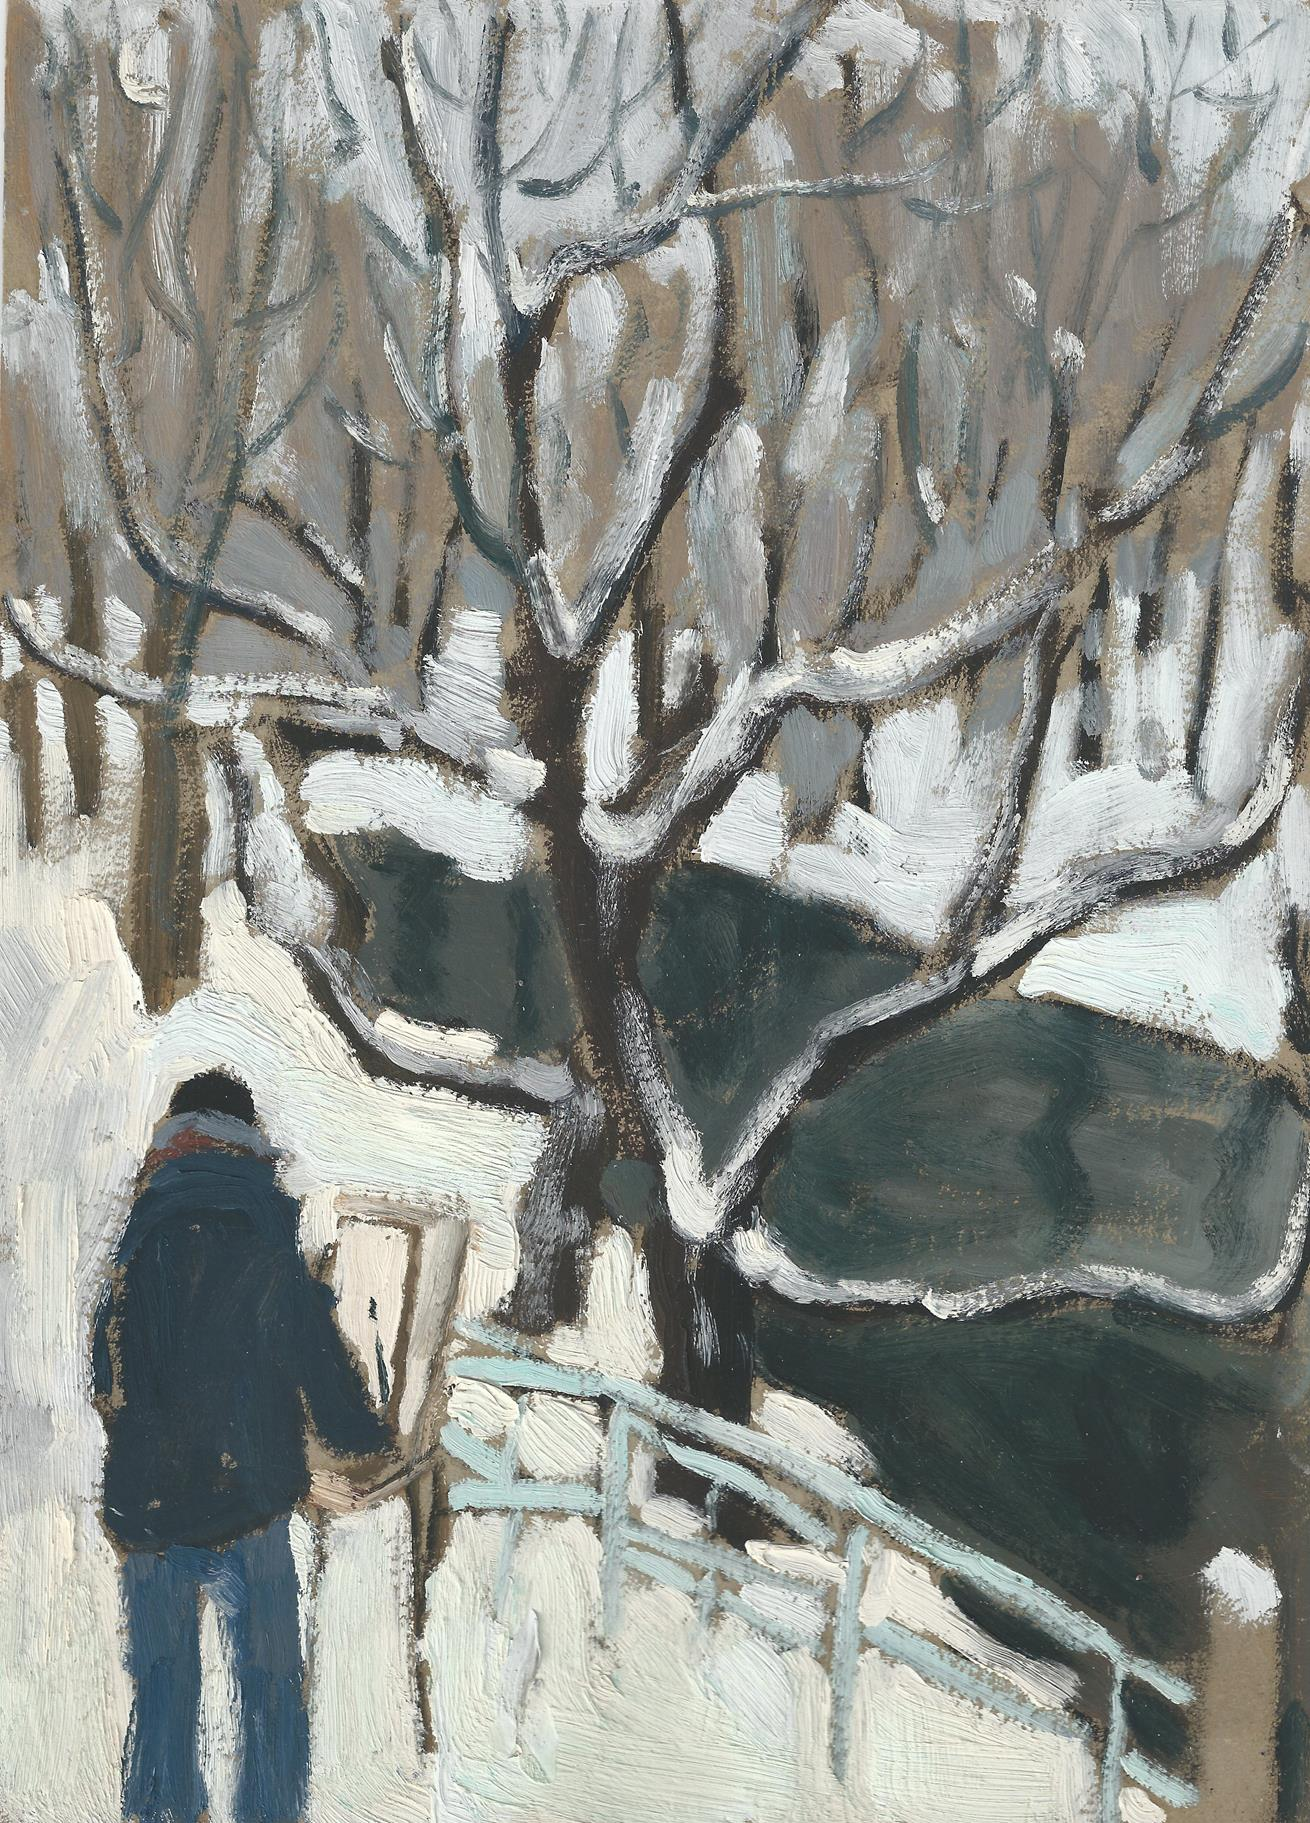 LI SHAN, Snow Scene,1970s,Shown in Wu Ming Exhibition in 1979,Oil on paper,李珊,雪景, 纸上油画,在1979年无名画会群展中展出,28.4 x 20.2cm, 11 3/16 x 7 7/8 inches